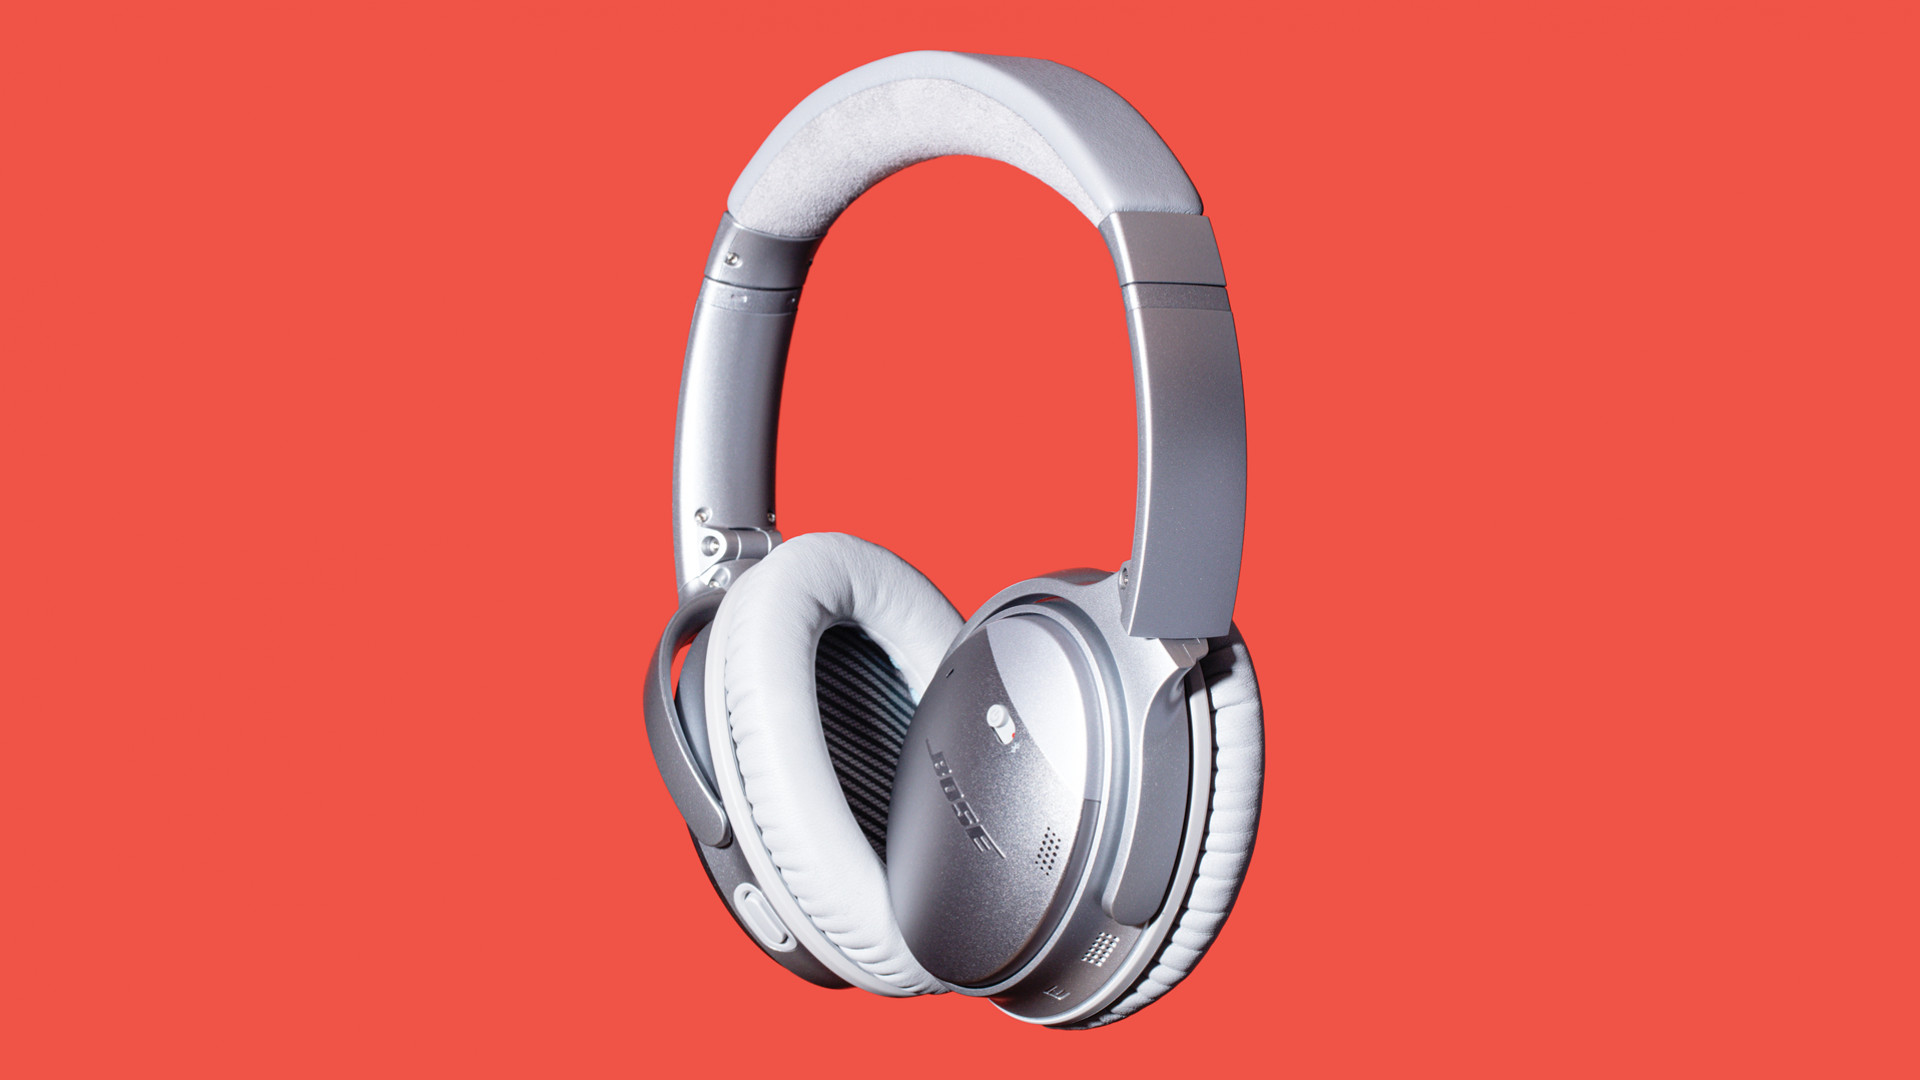 Bose Quietcomfort 35 II wireless noise-cancelling headphones